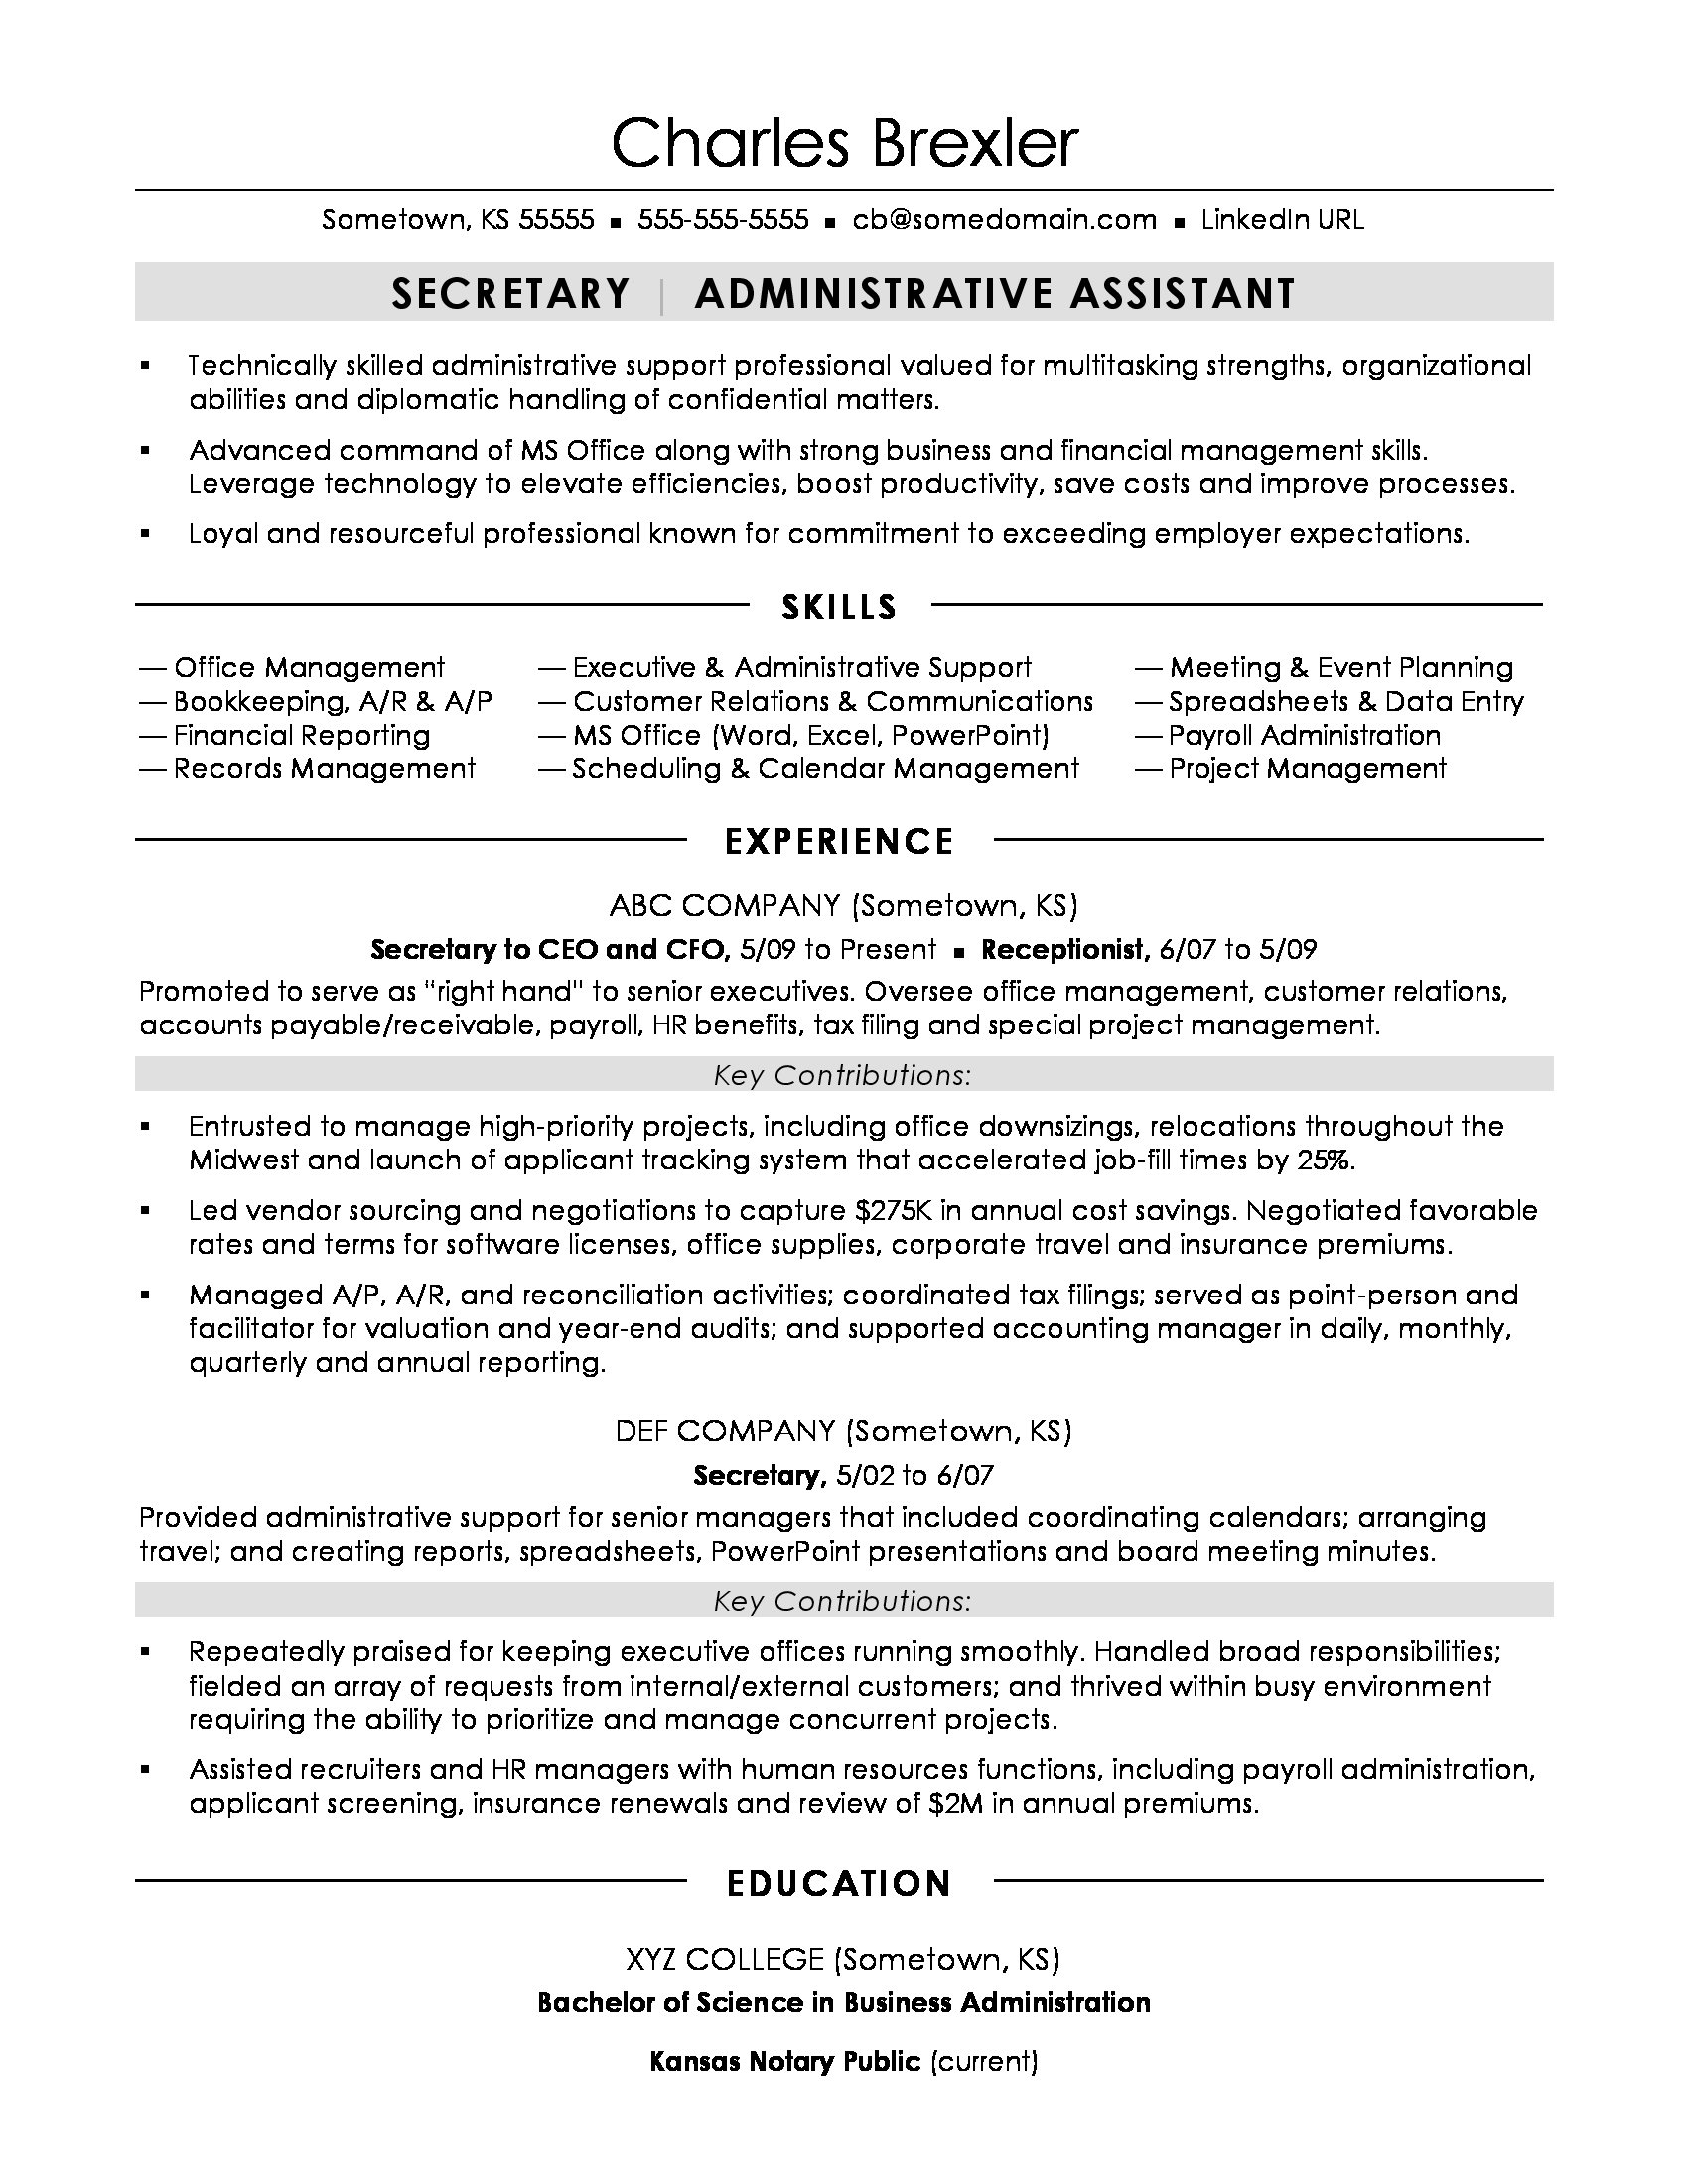 secretary resume sample | monster